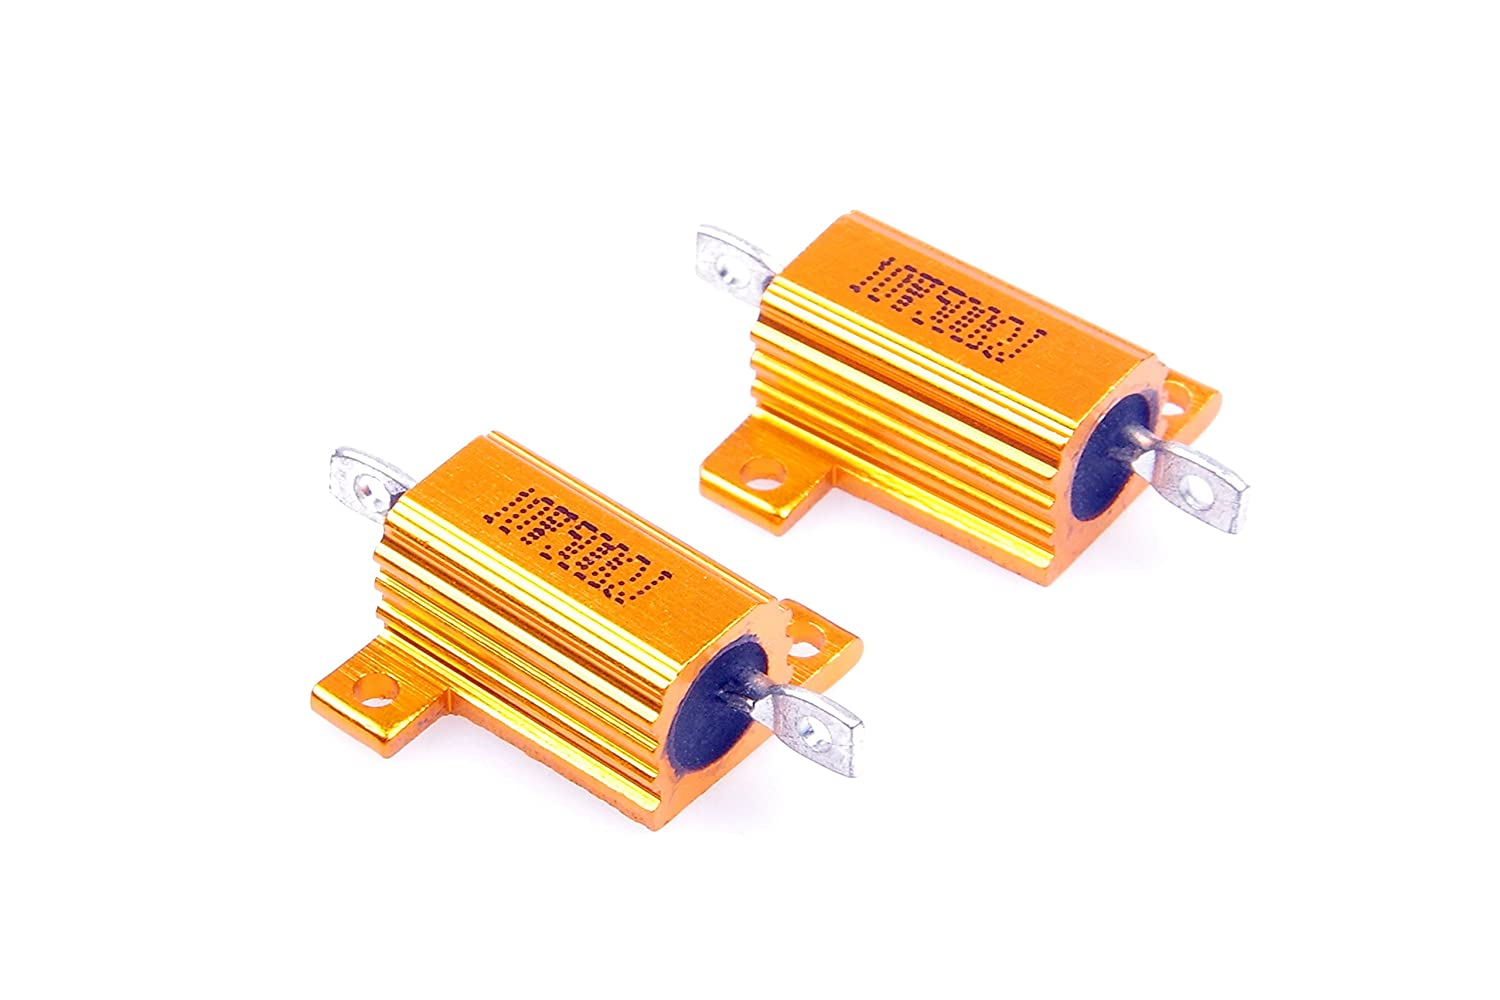 LM YN 10 Watt 500 Ohm 5/% Wirewound Resistor Electronic Aluminium Shell Resistor Gold for Inverter LED lights Frequency Divider Servo Industry Industrial Control 2-Pcs